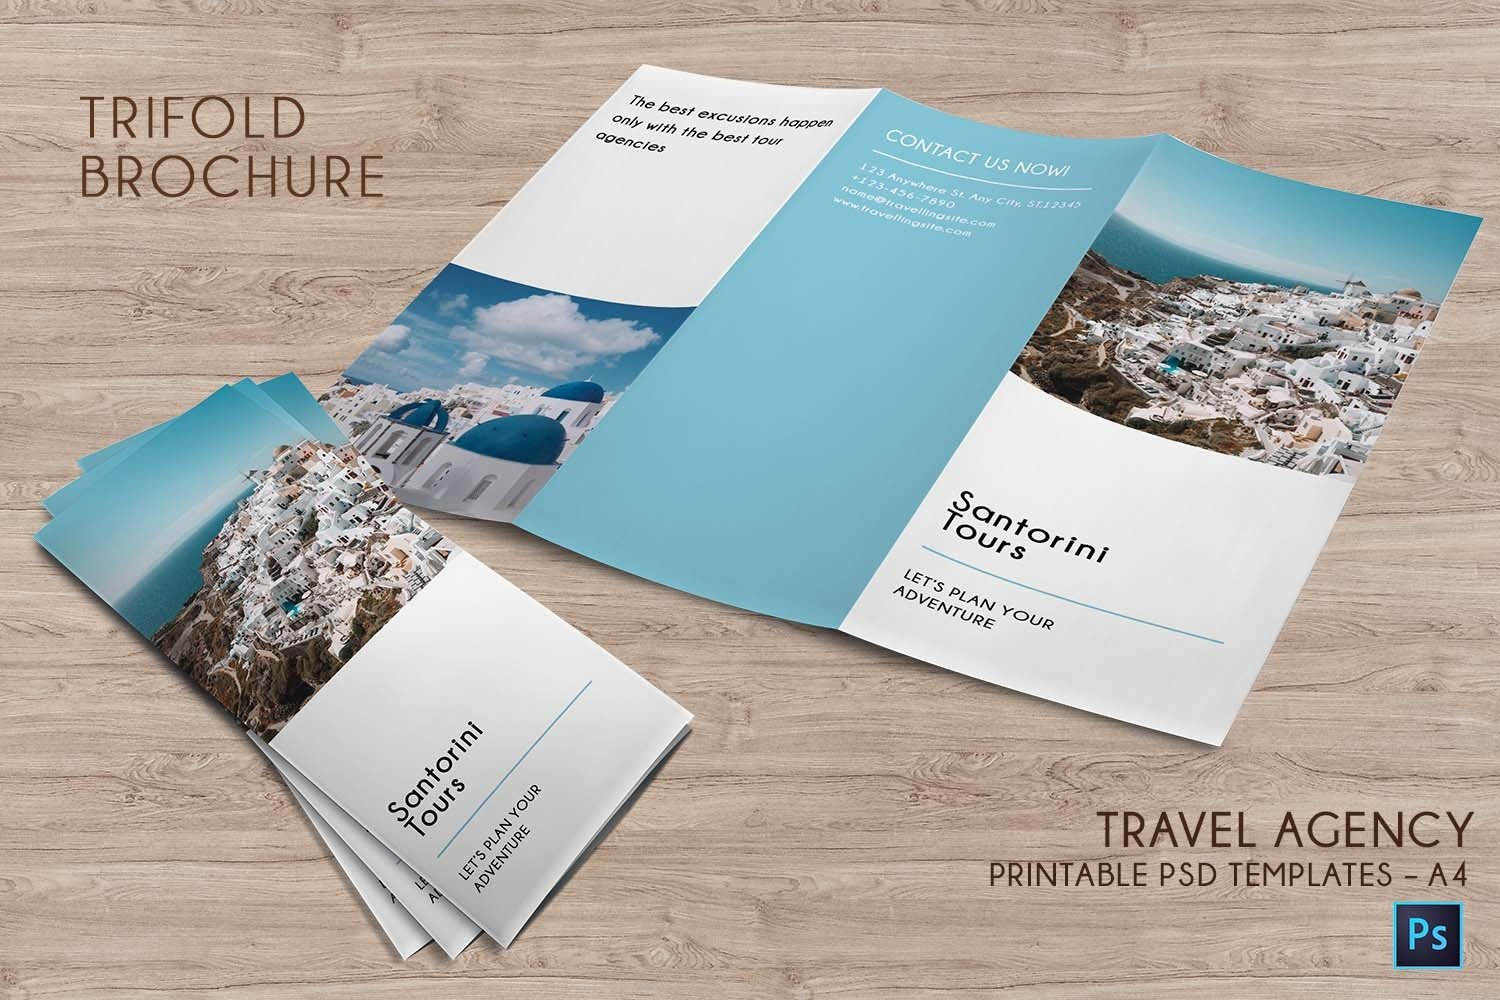 Trifold Agency Travel Brochure Editable PSD Templates example image 3